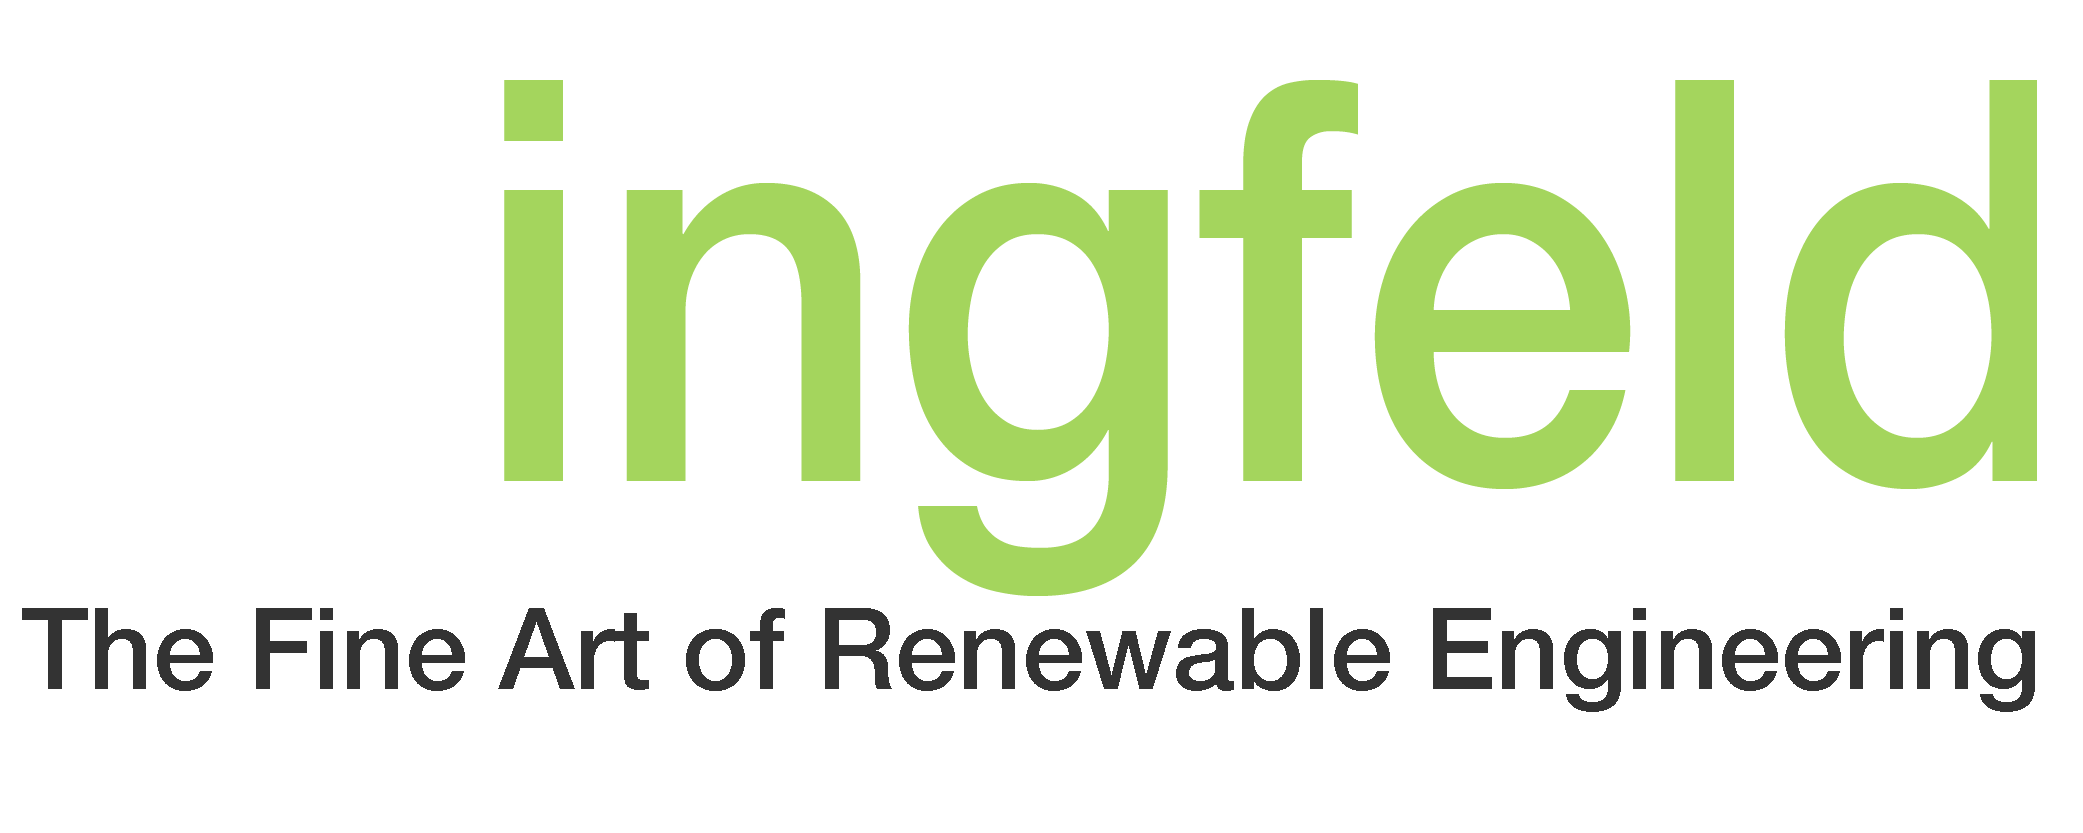 ingfeld - Development and Engineering Services for Renewable Energies